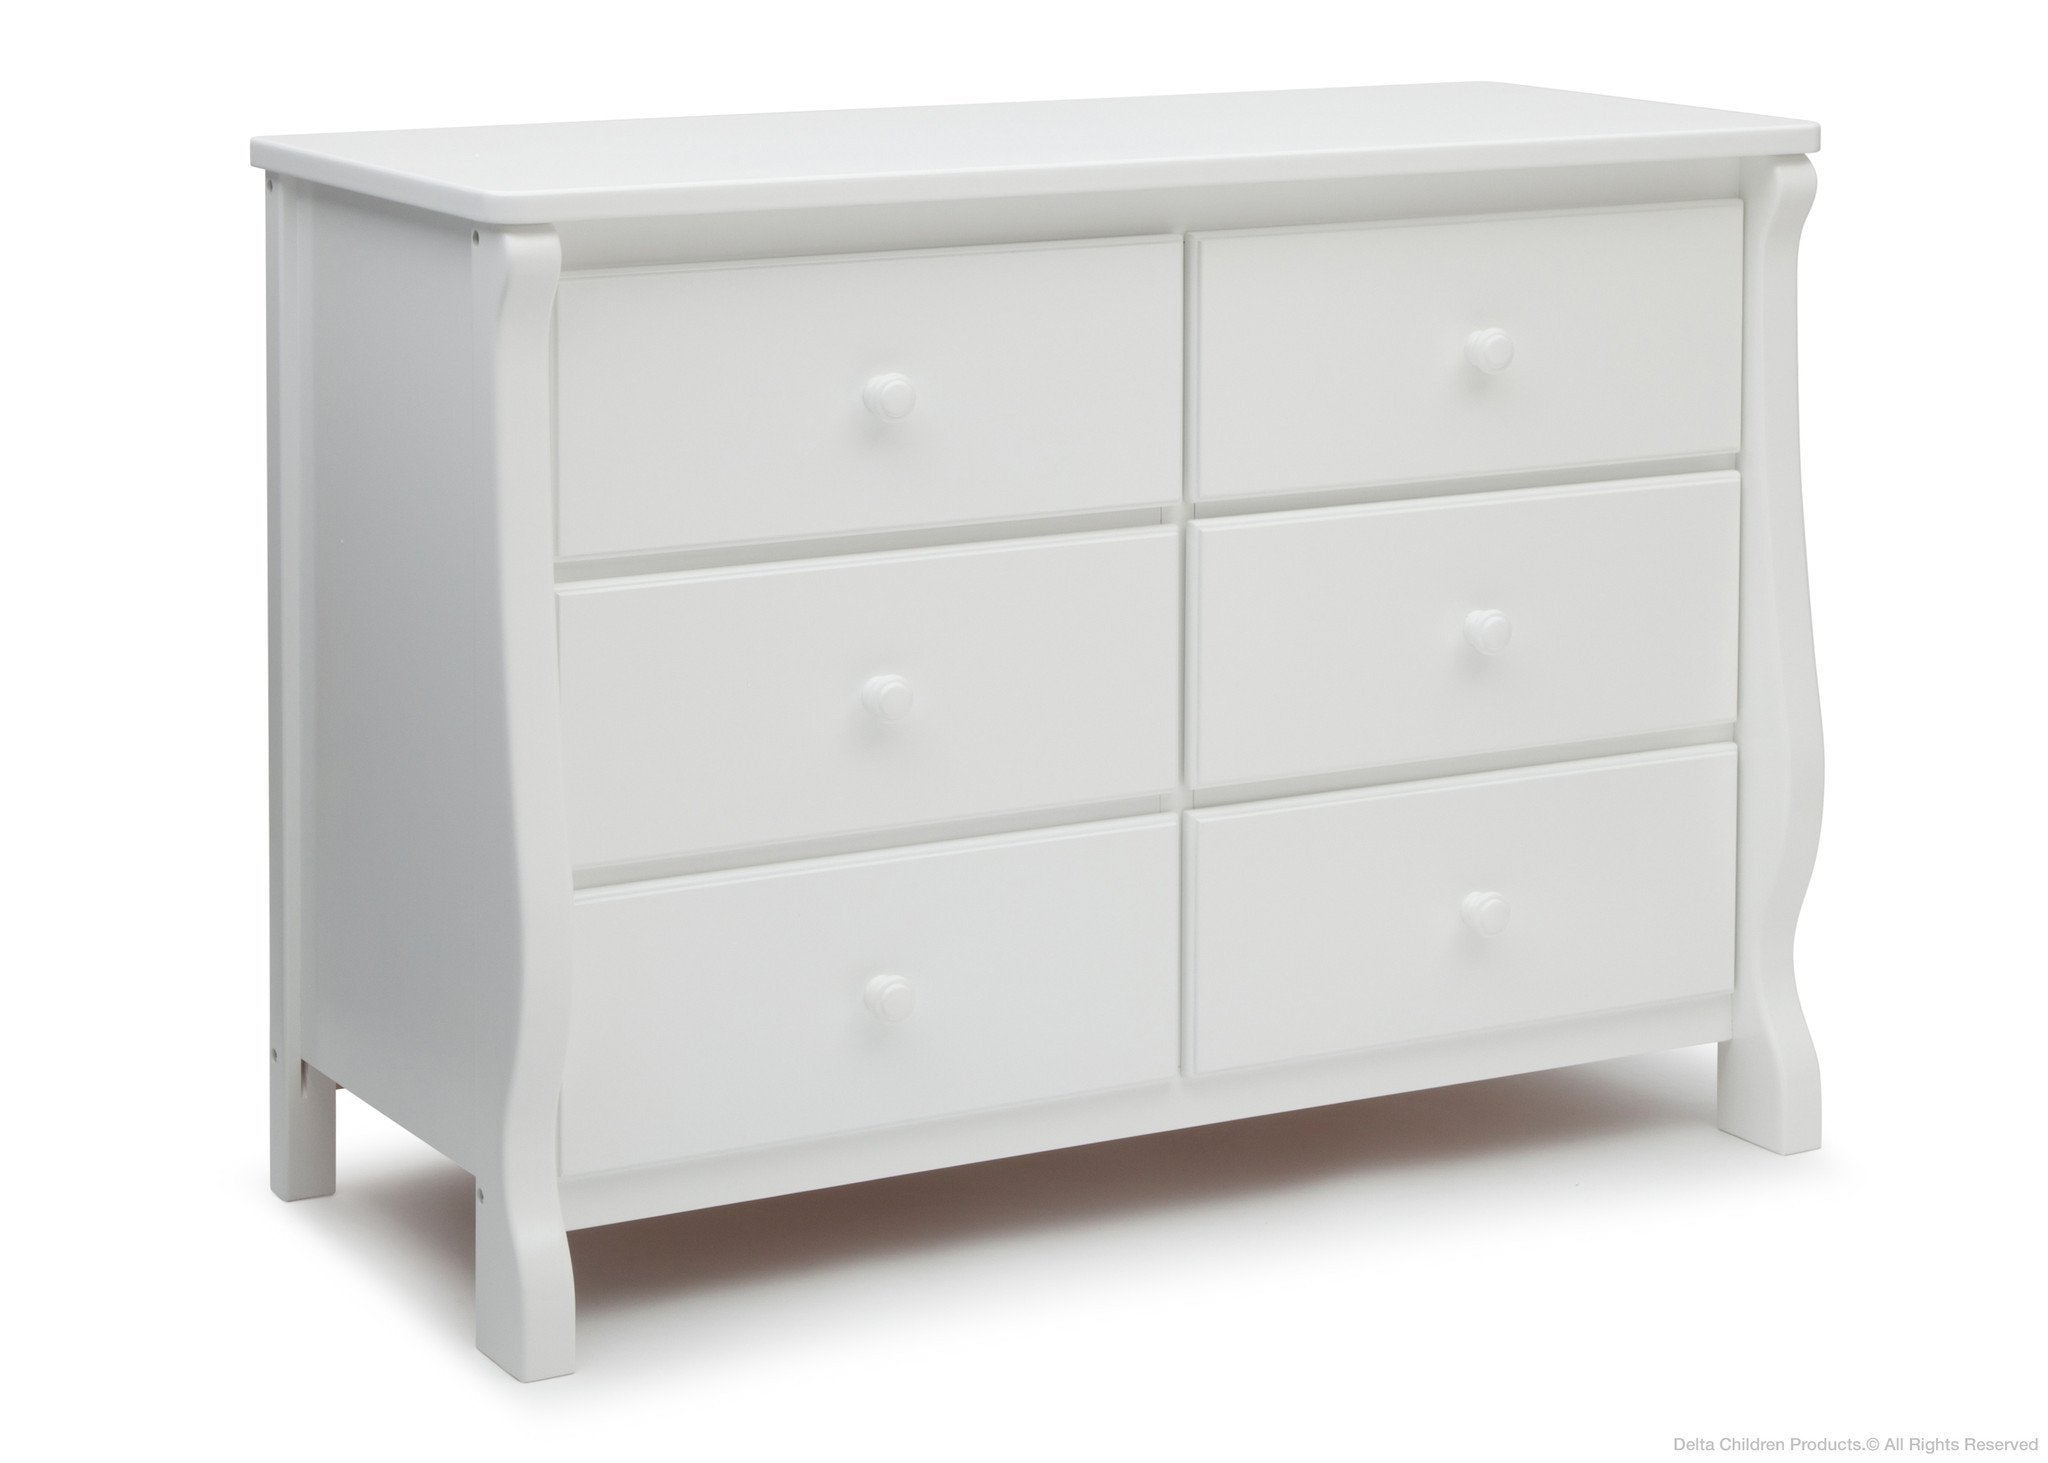 Delta Children White (100) Canton / Eclipse Dresser Side View c2c